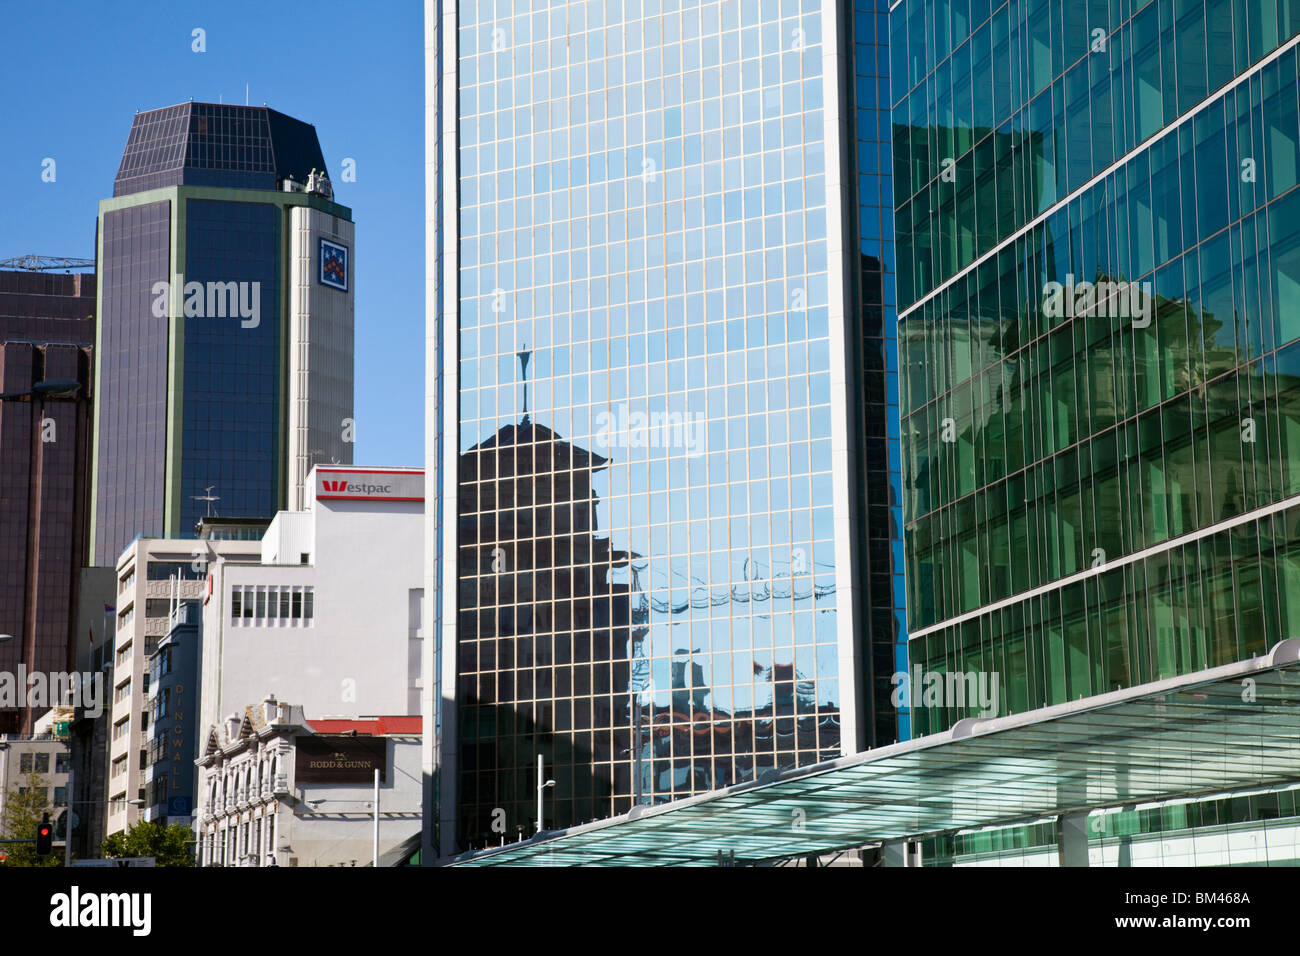 Moderne Architektur des central Business District. Auckland, Nordinsel, Neuseeland Stockbild